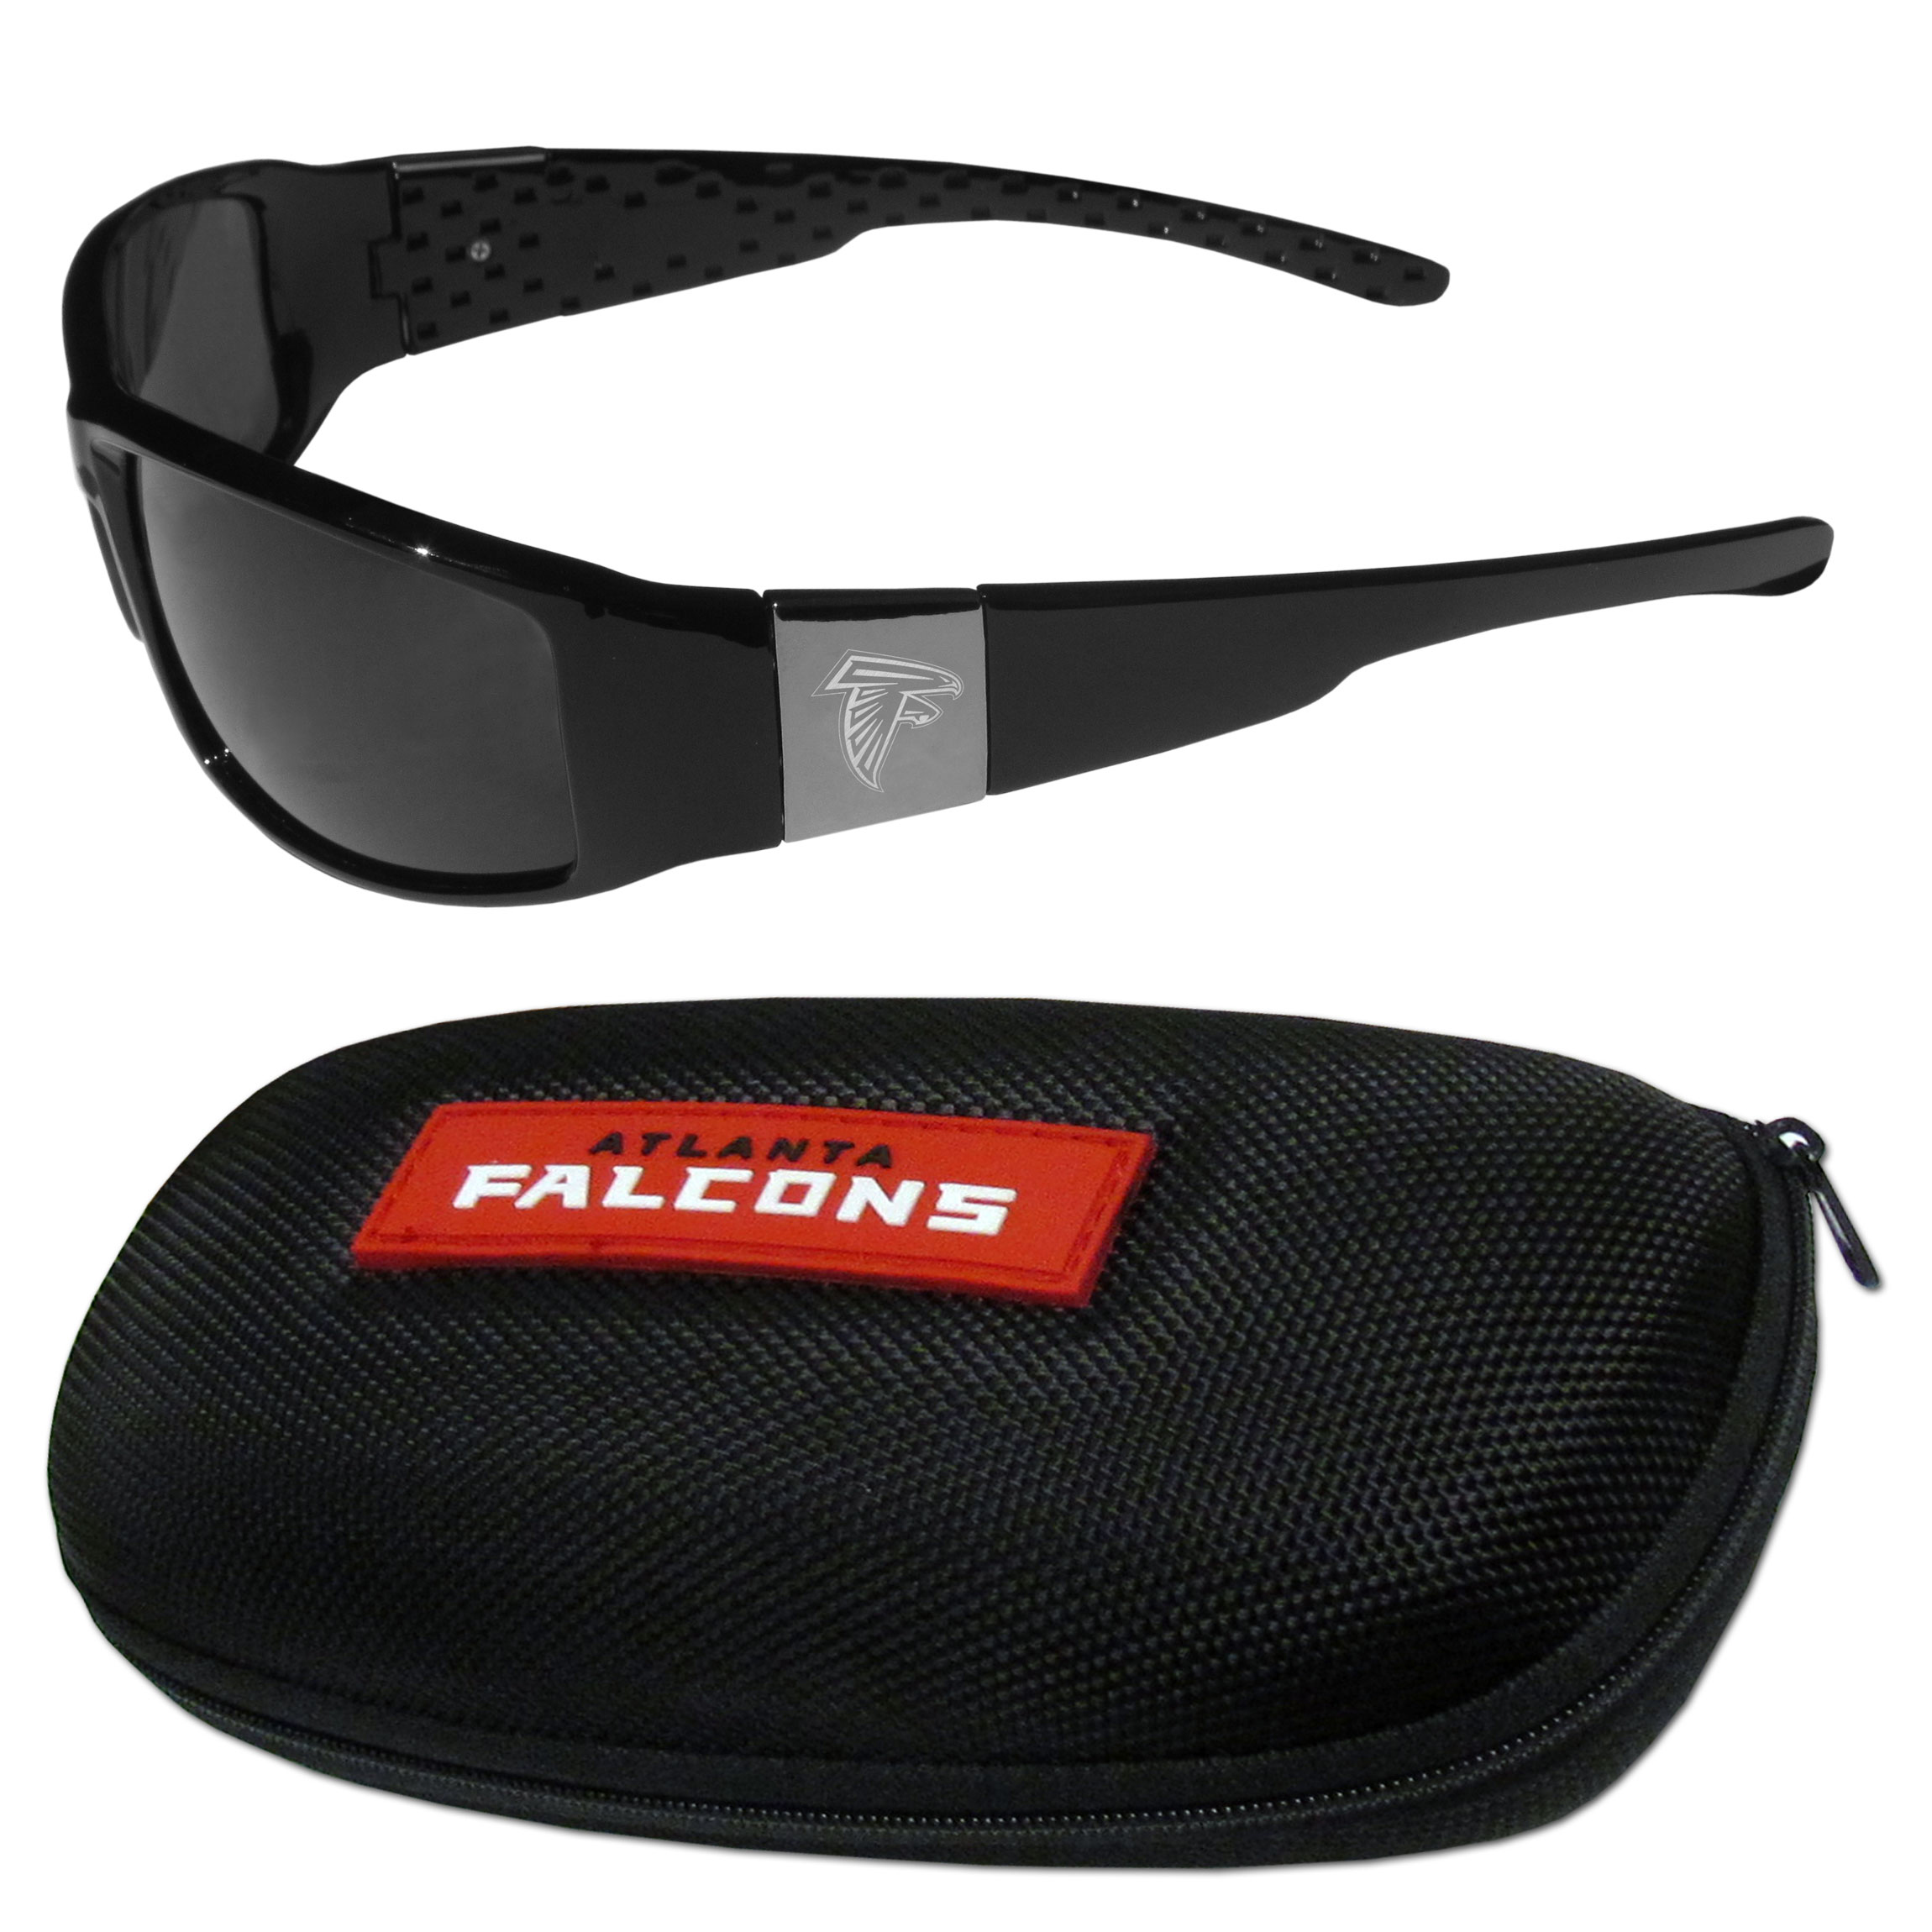 Atlanta Falcons Chrome Wrap Sunglasses and Zippered Carrying Case - This set includes our sleek and stylish Atlanta Falcons chrome wrap sunglasses and our hard shell, zippered carrying case. The sunglasses feature etched team logos on each arm and 100% UVA/UVB protection. The case features a large and colorful team emblem.